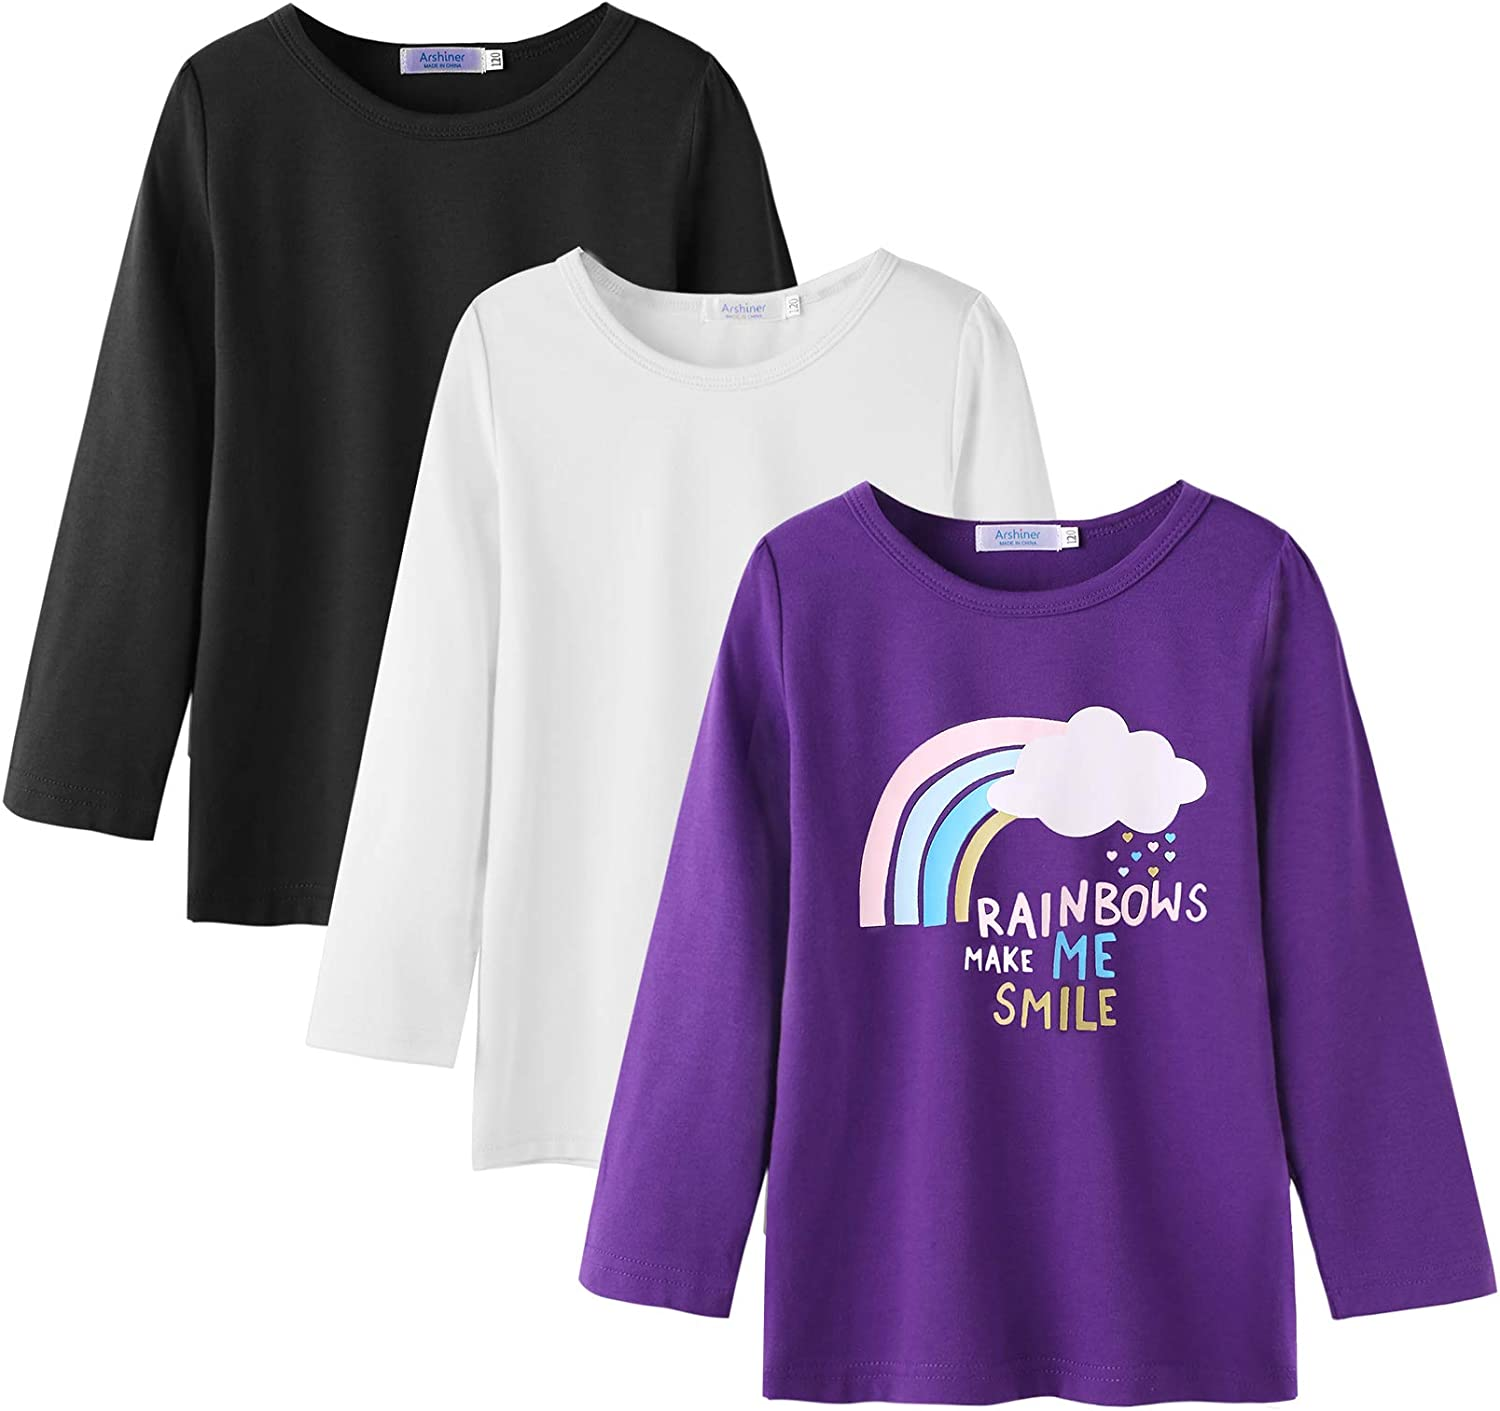 MISS POPULAR 5-Pack Girls Kids Long Sleeve T Shirt with Tie Front Cotton Crew Neck Soft Fabric Many Colors Size 4-16